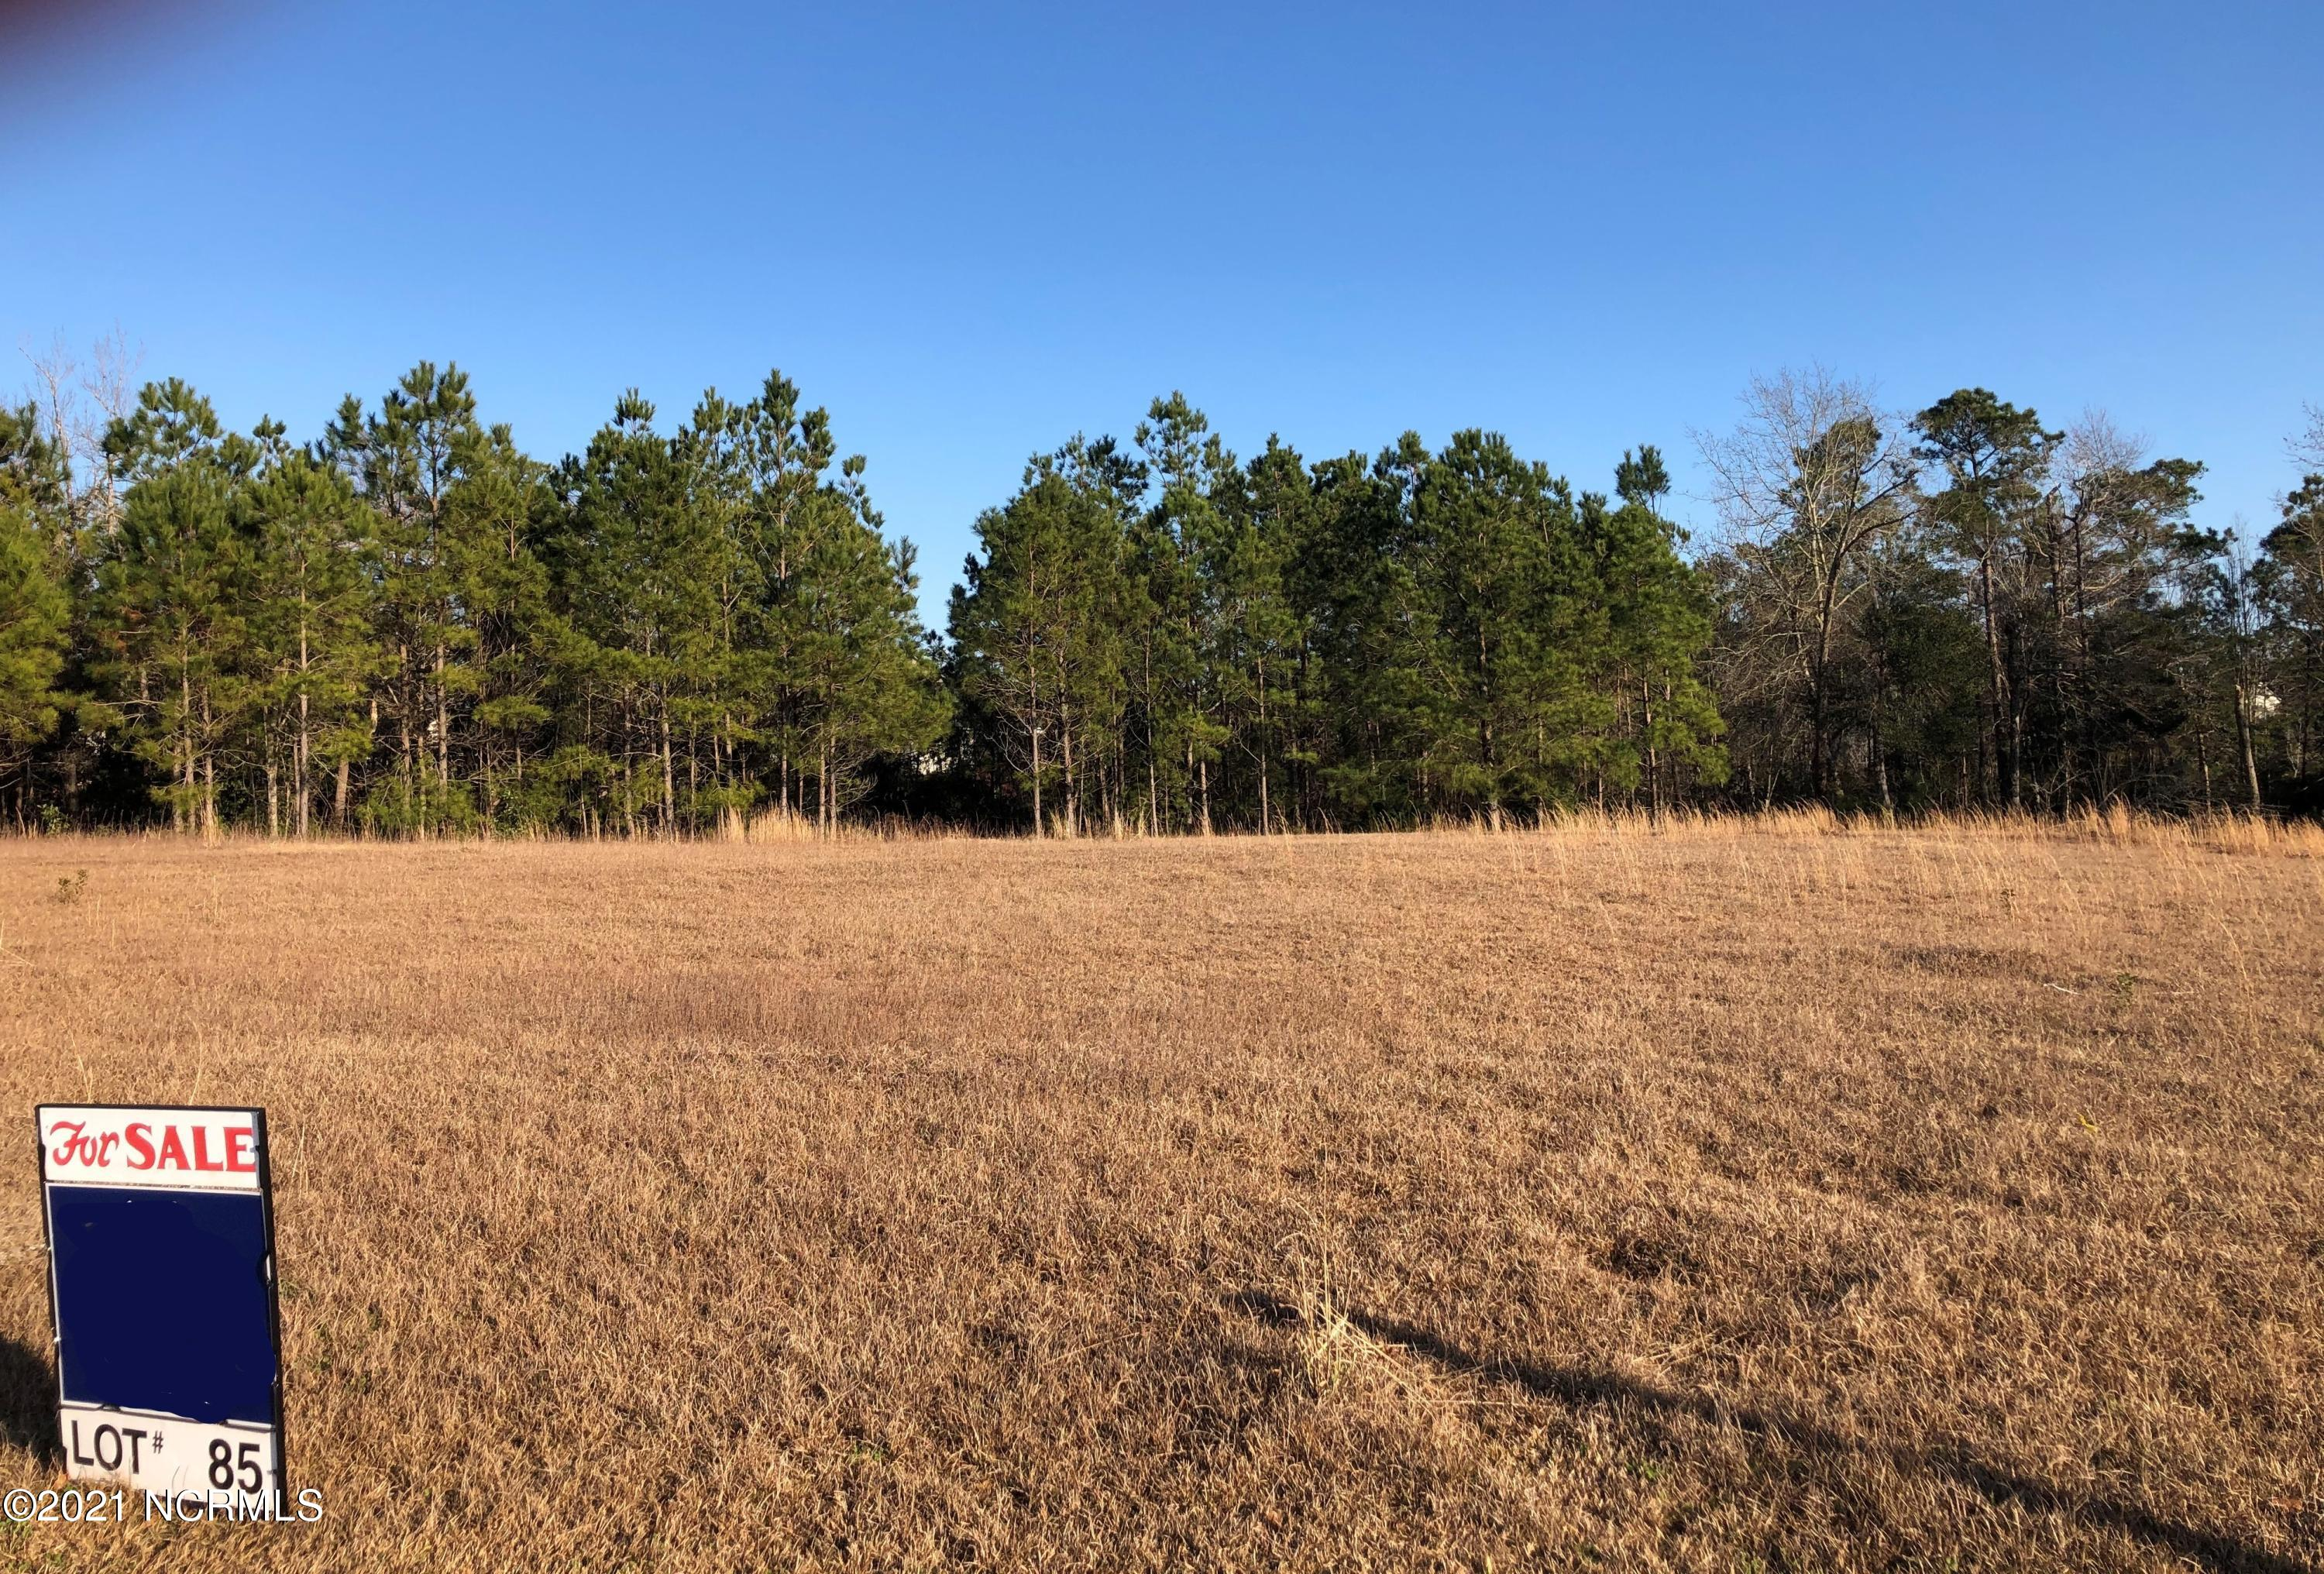 Beautiful 1.6+/- acre residential building lot for sale in Halls Creek North. Wonderful neighborhood with sidewalks, just a few minutes from historic Swansboro and the beach. Lot has frontage on marsh and creek. Great for kayaks. Call for more information.